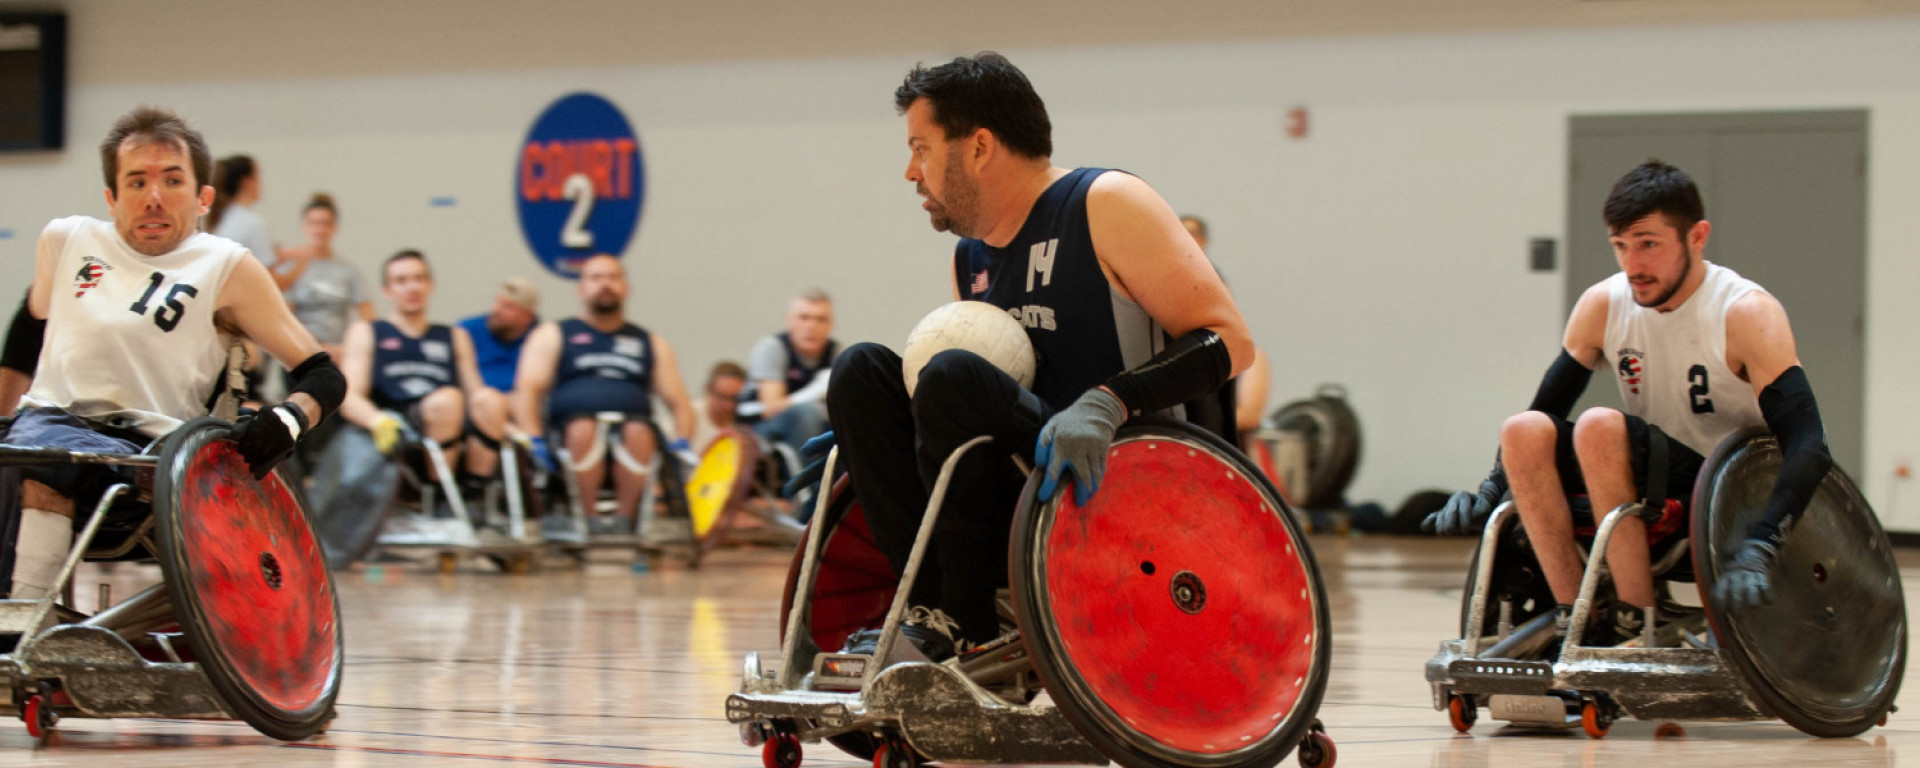 wheelchair rugby players